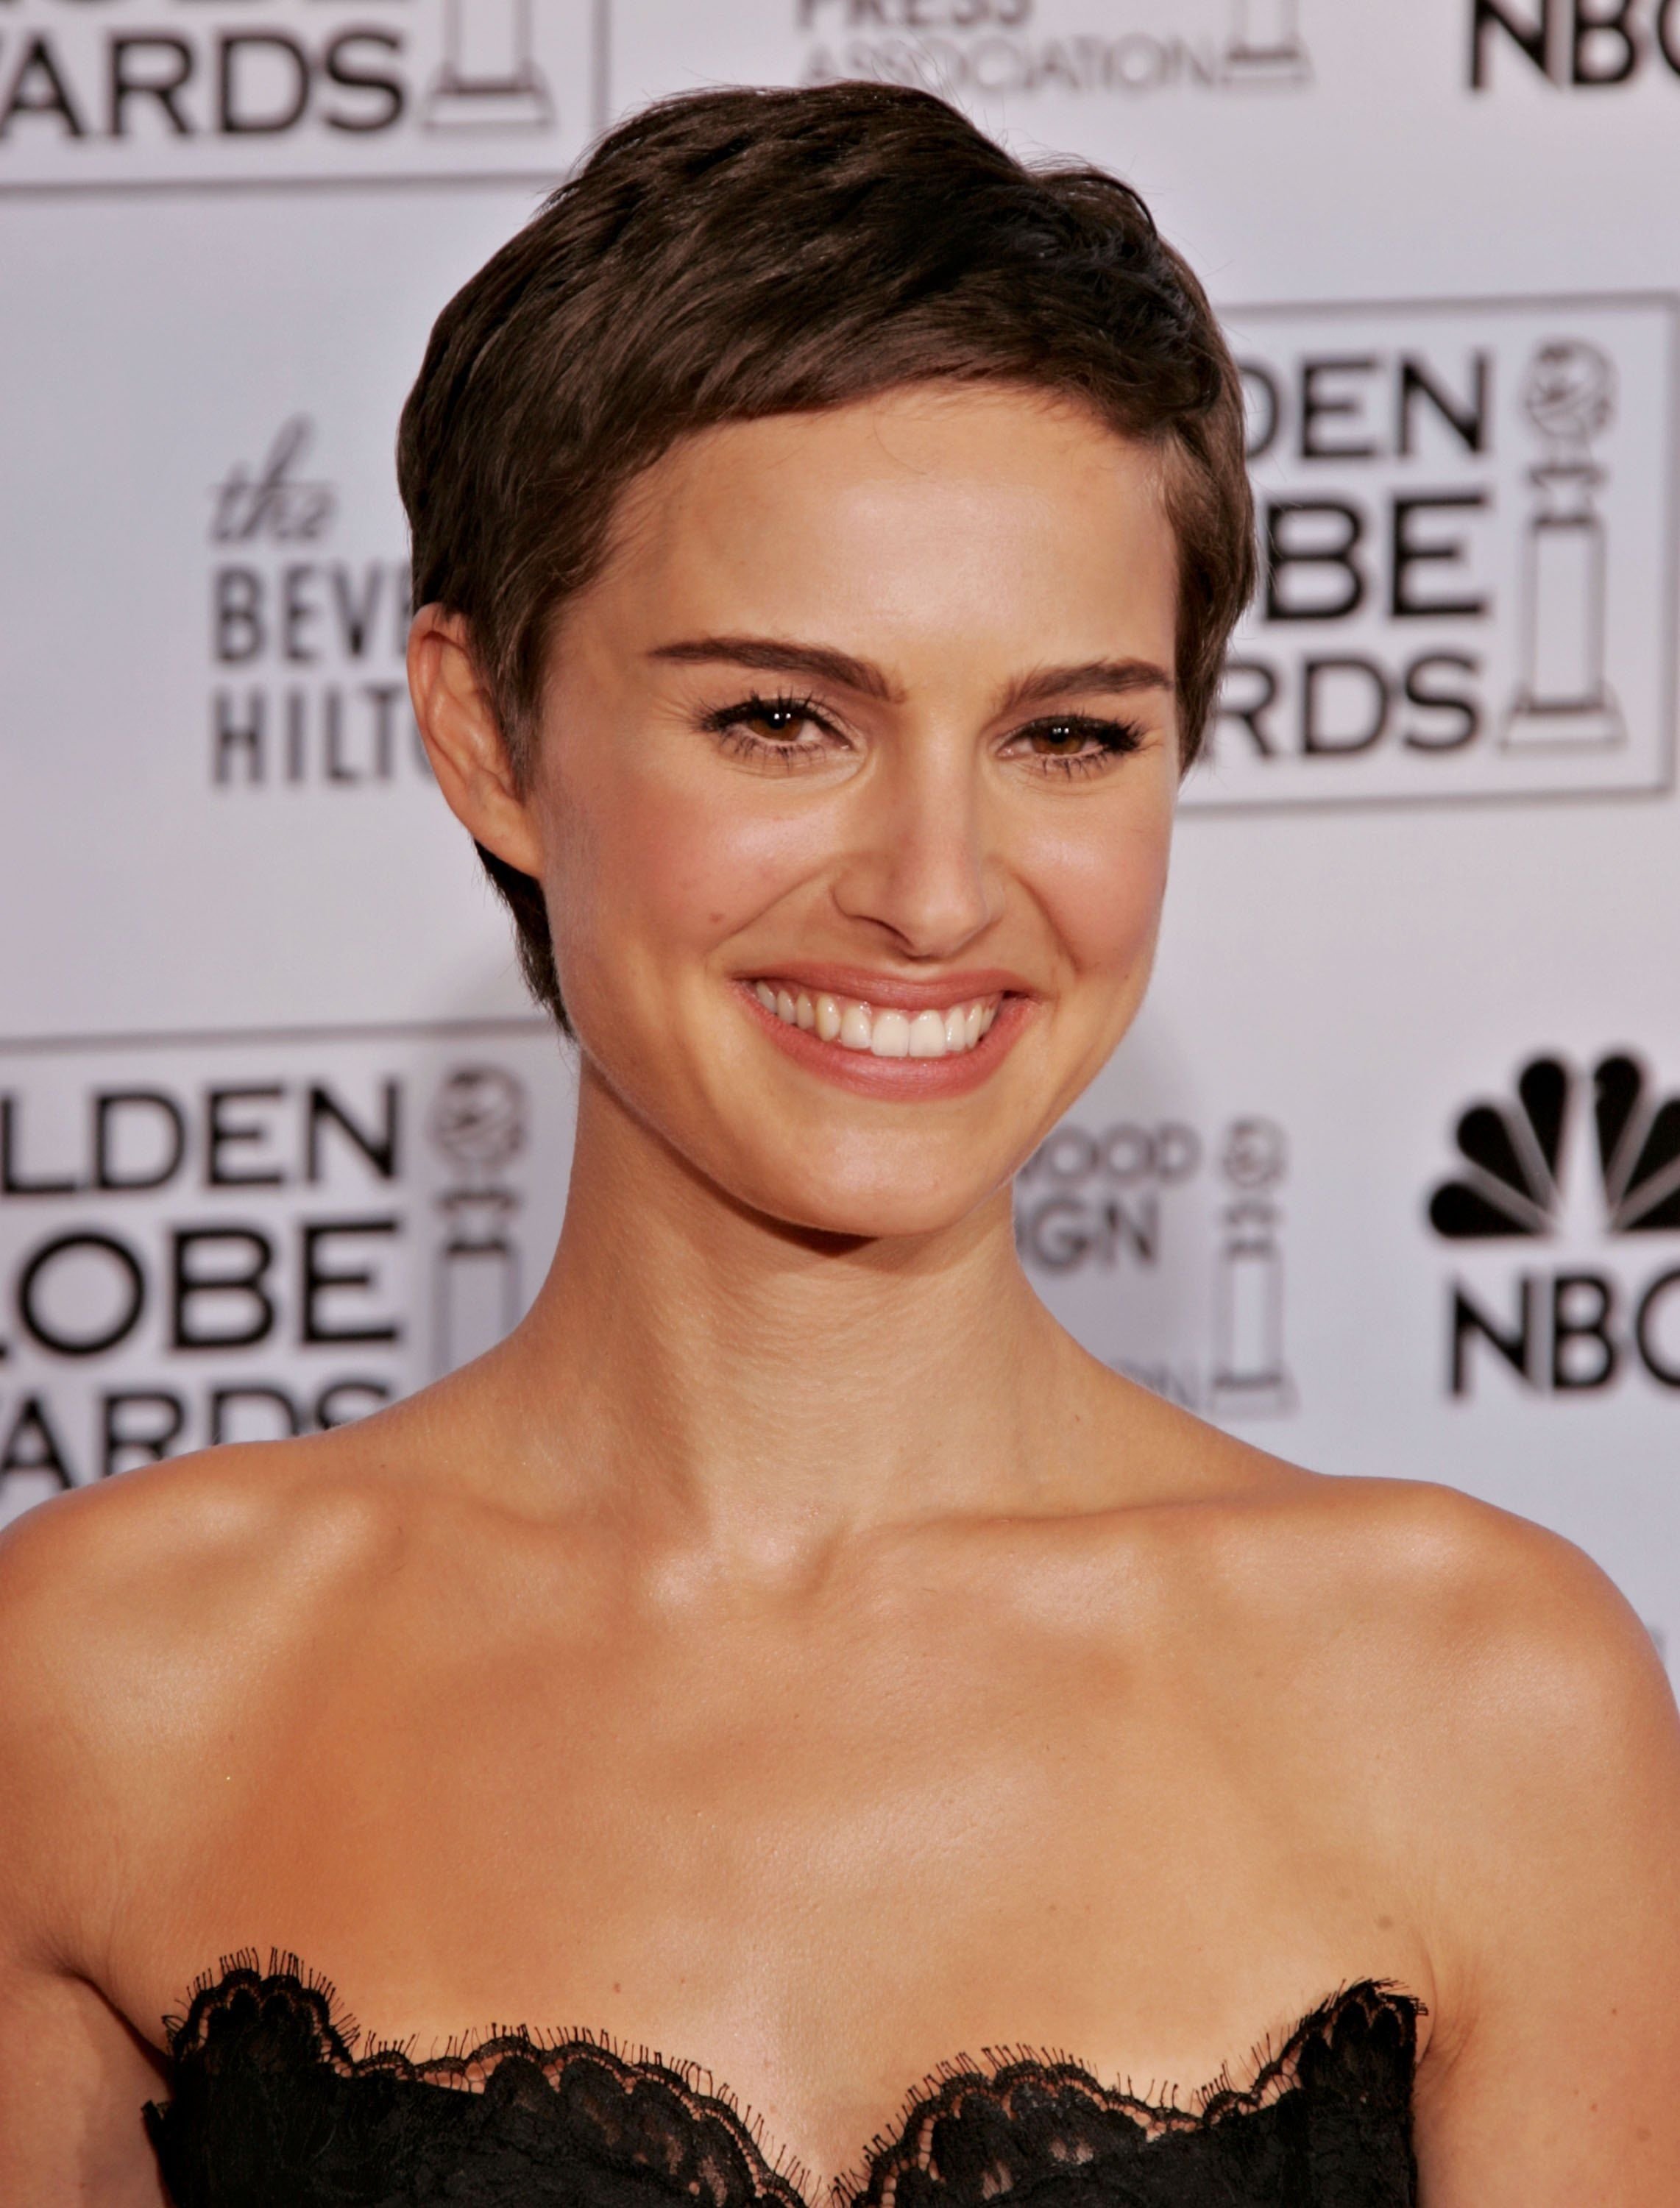 50 best pixie cut hairstyle ideas for 2017 - chic celebrity pixie